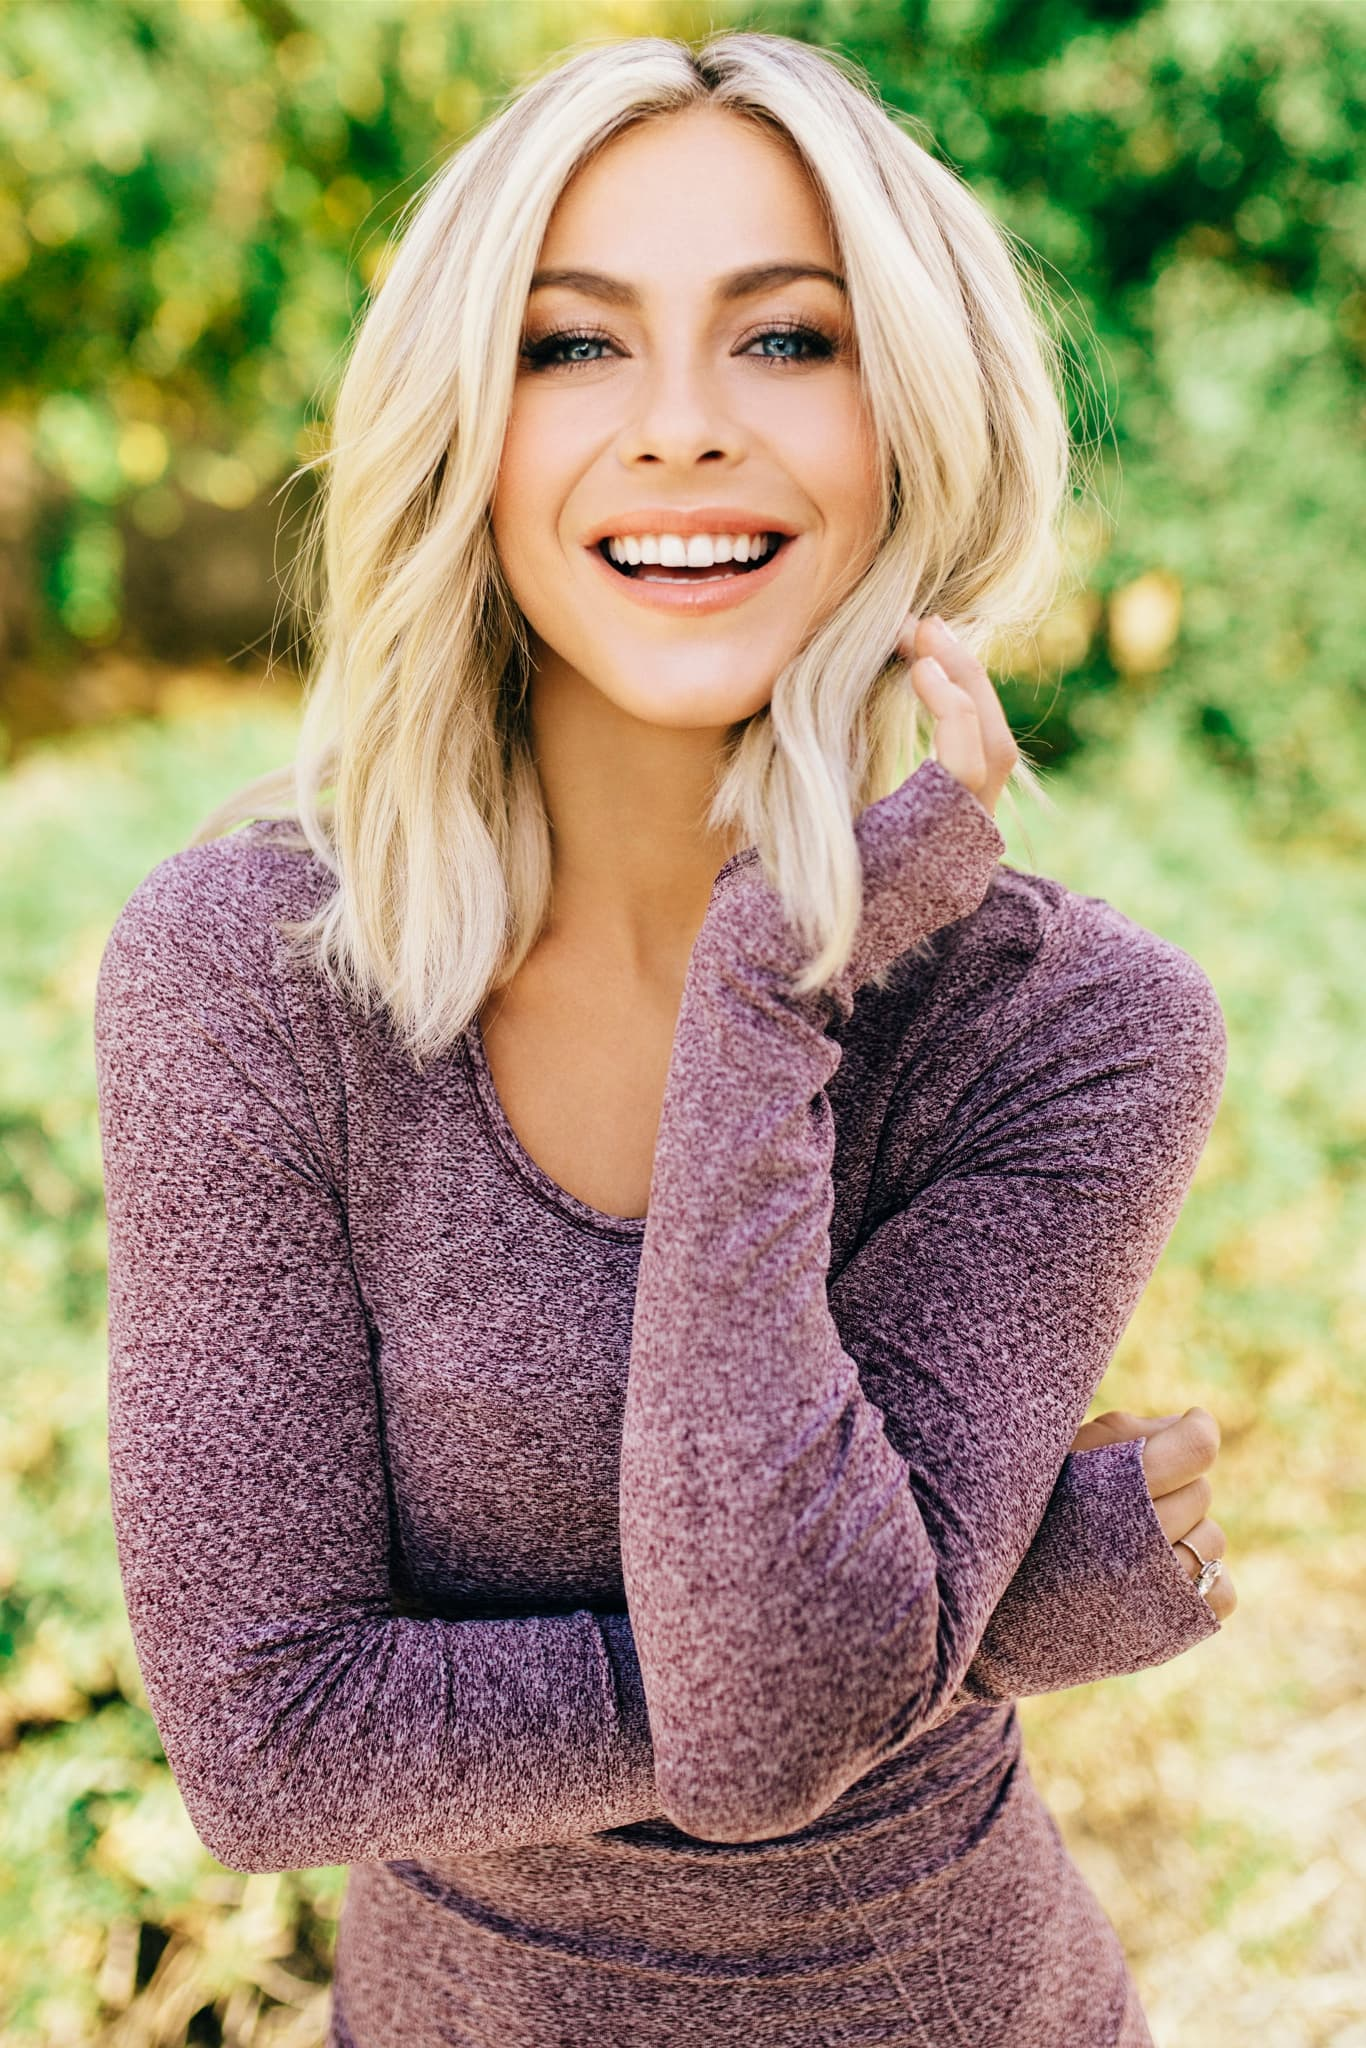 Wallpaper Julianne Hough For IPhone HD for PC